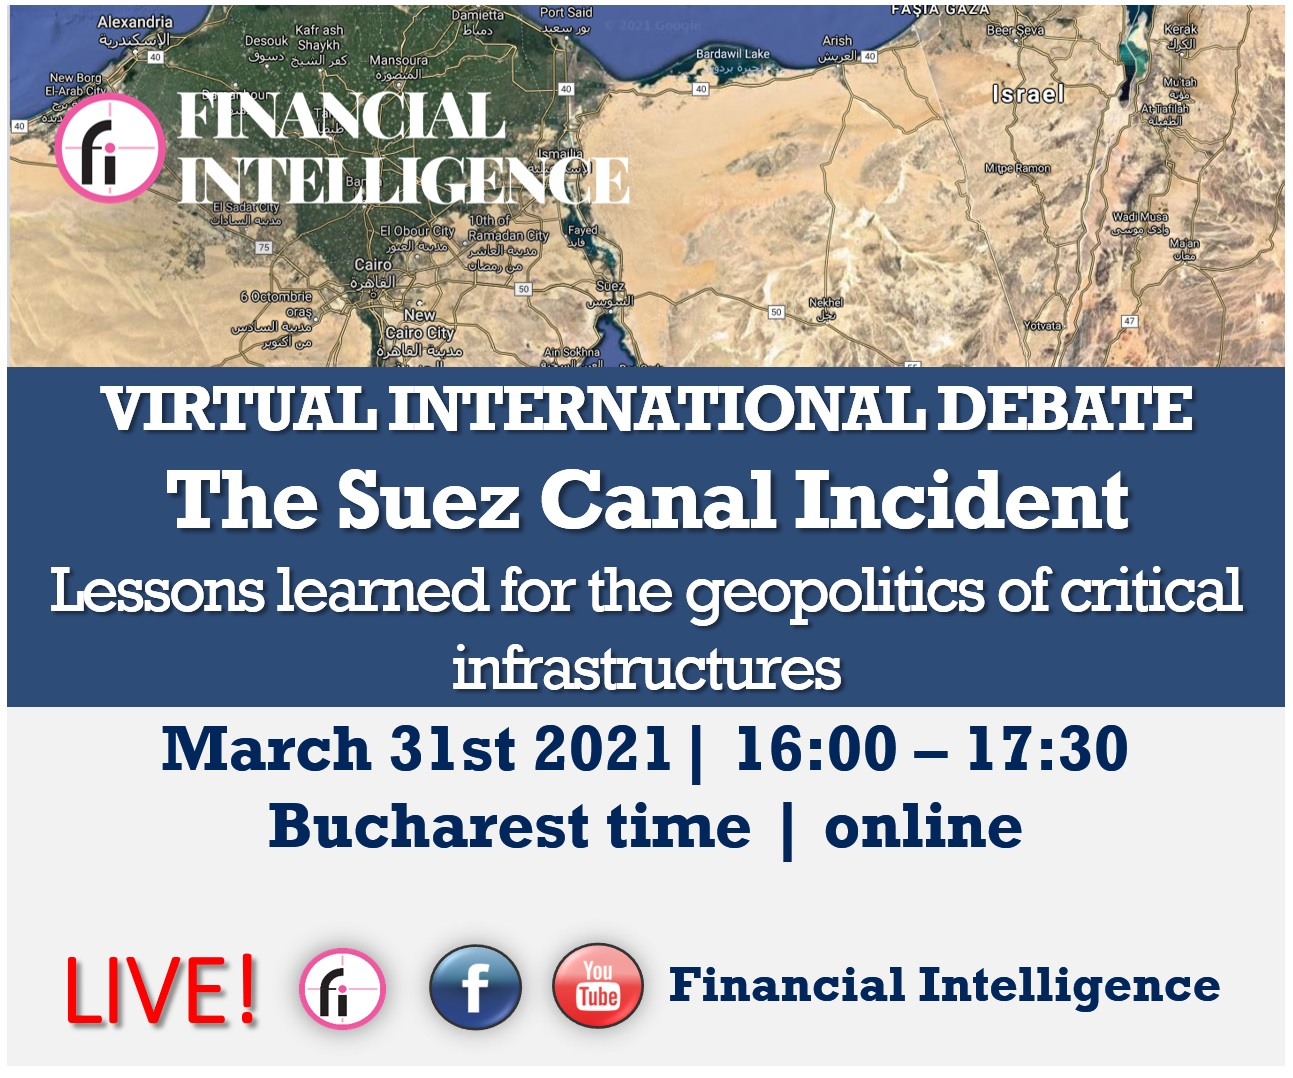 The Suez Canal Incident